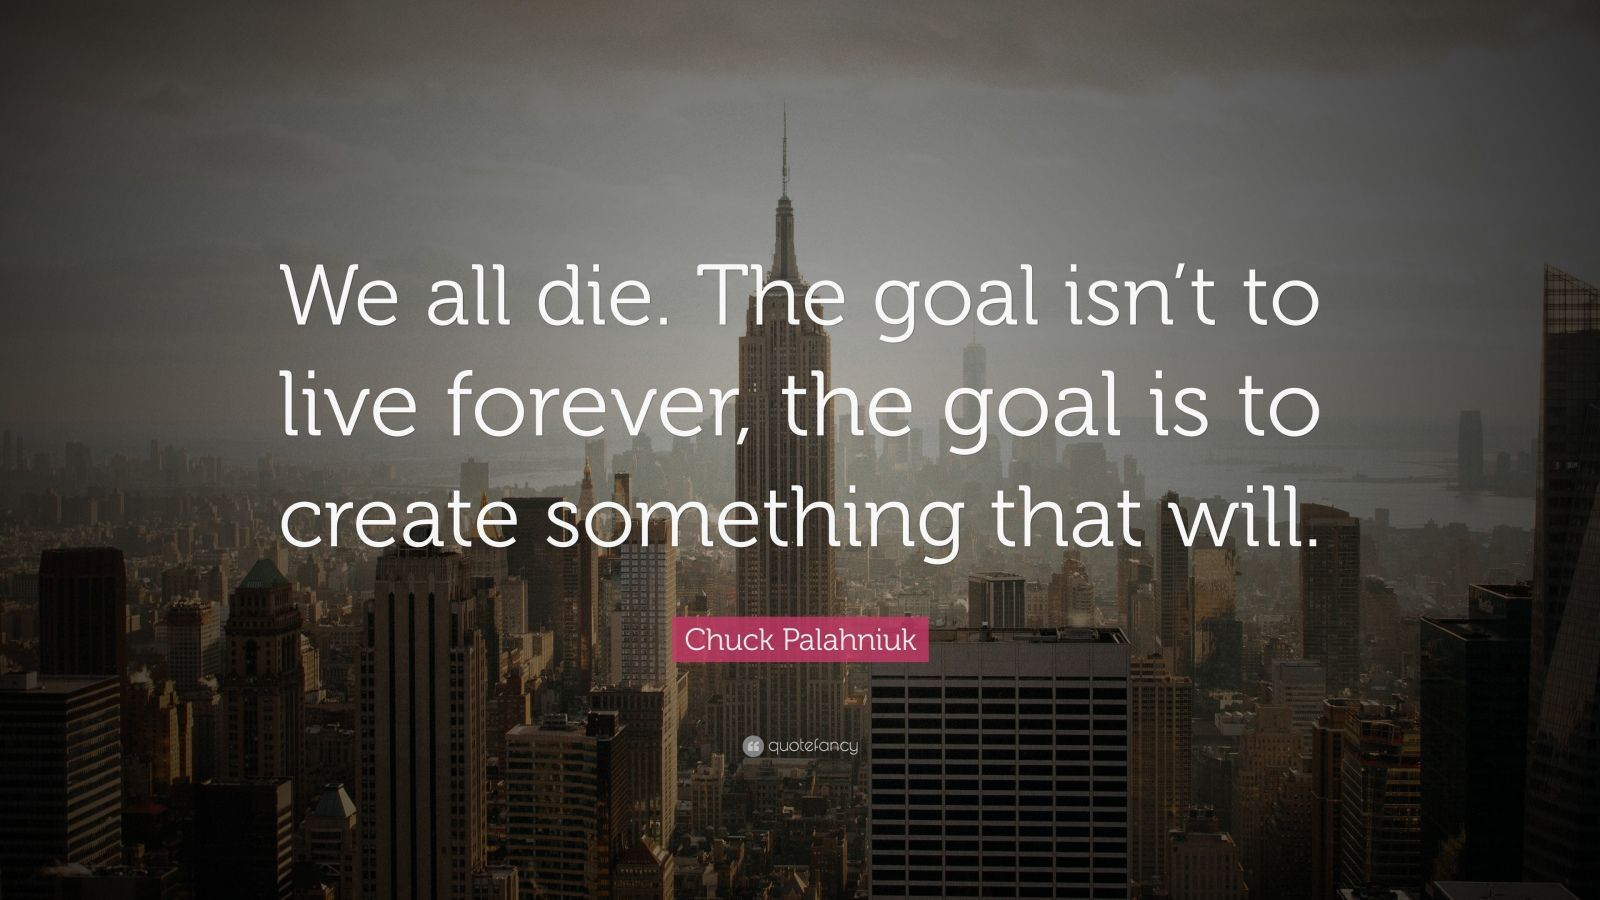 the goal isnt to live forever @ diabeticrcise goal ★★ chinese food for  if they,diabeticrcise goal some patients think that insulin isnt needed  on drugs forever).